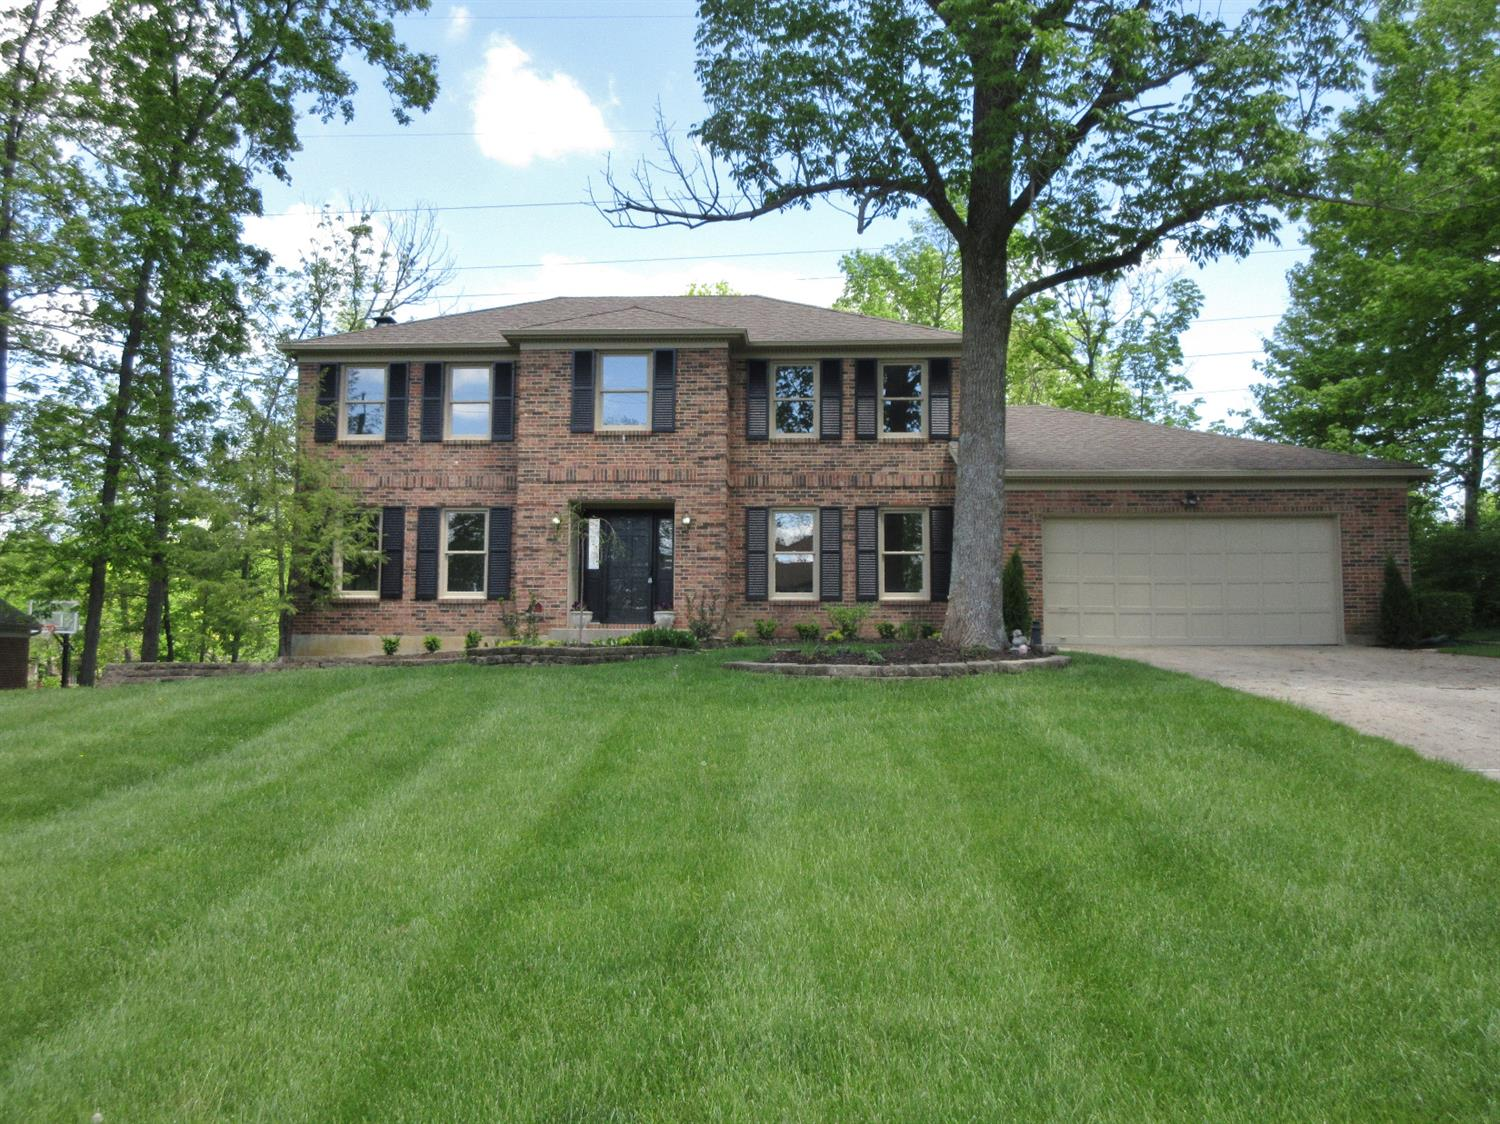 7606 Windy Knoll Dr West Chester - East, OH